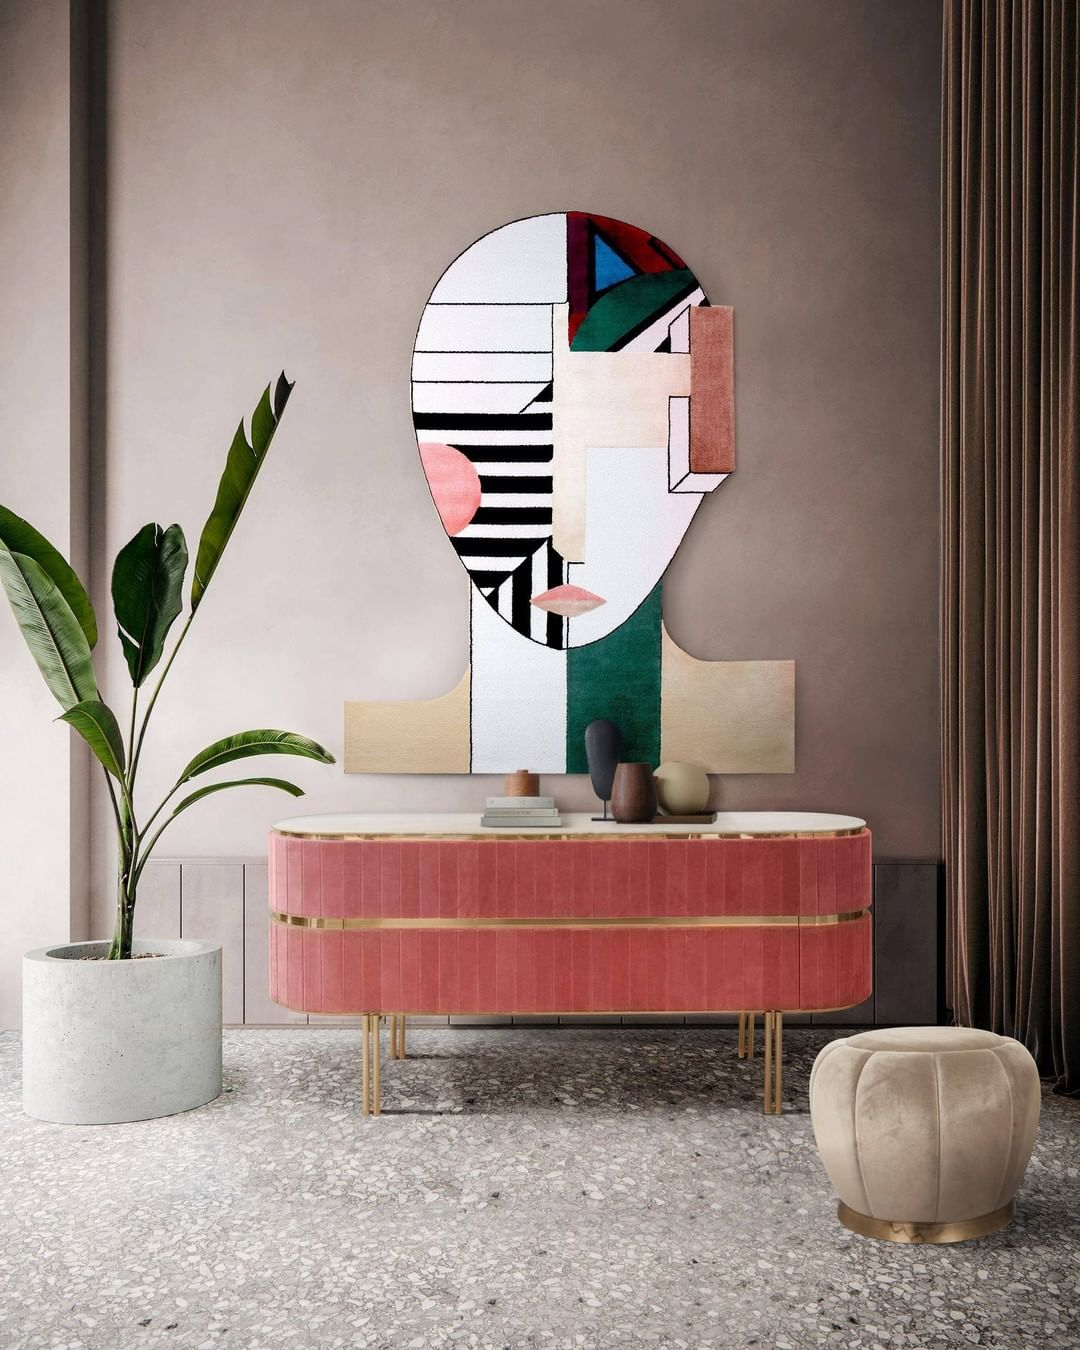 CHECK THIS AMAZING MID-CENTURY SIDEBOARD